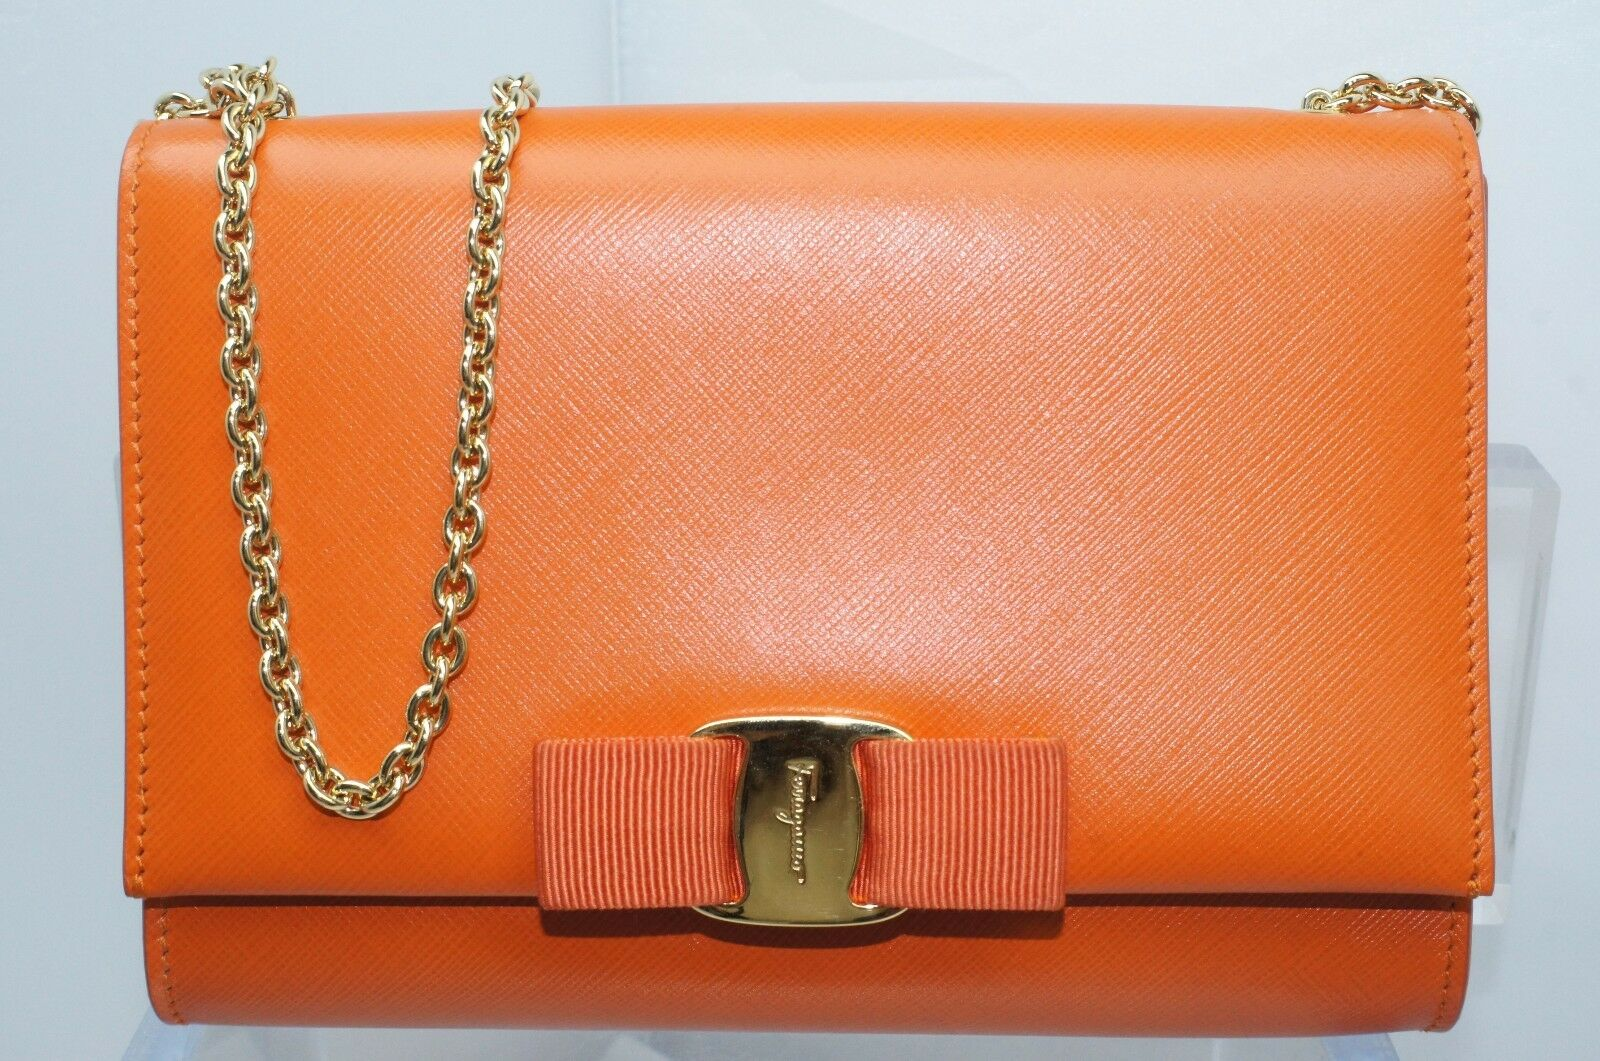 Salvatore Ferragamo Orange Bag Miss Vara Saffiano Clutch Crossbody ... fc05e7d60e098